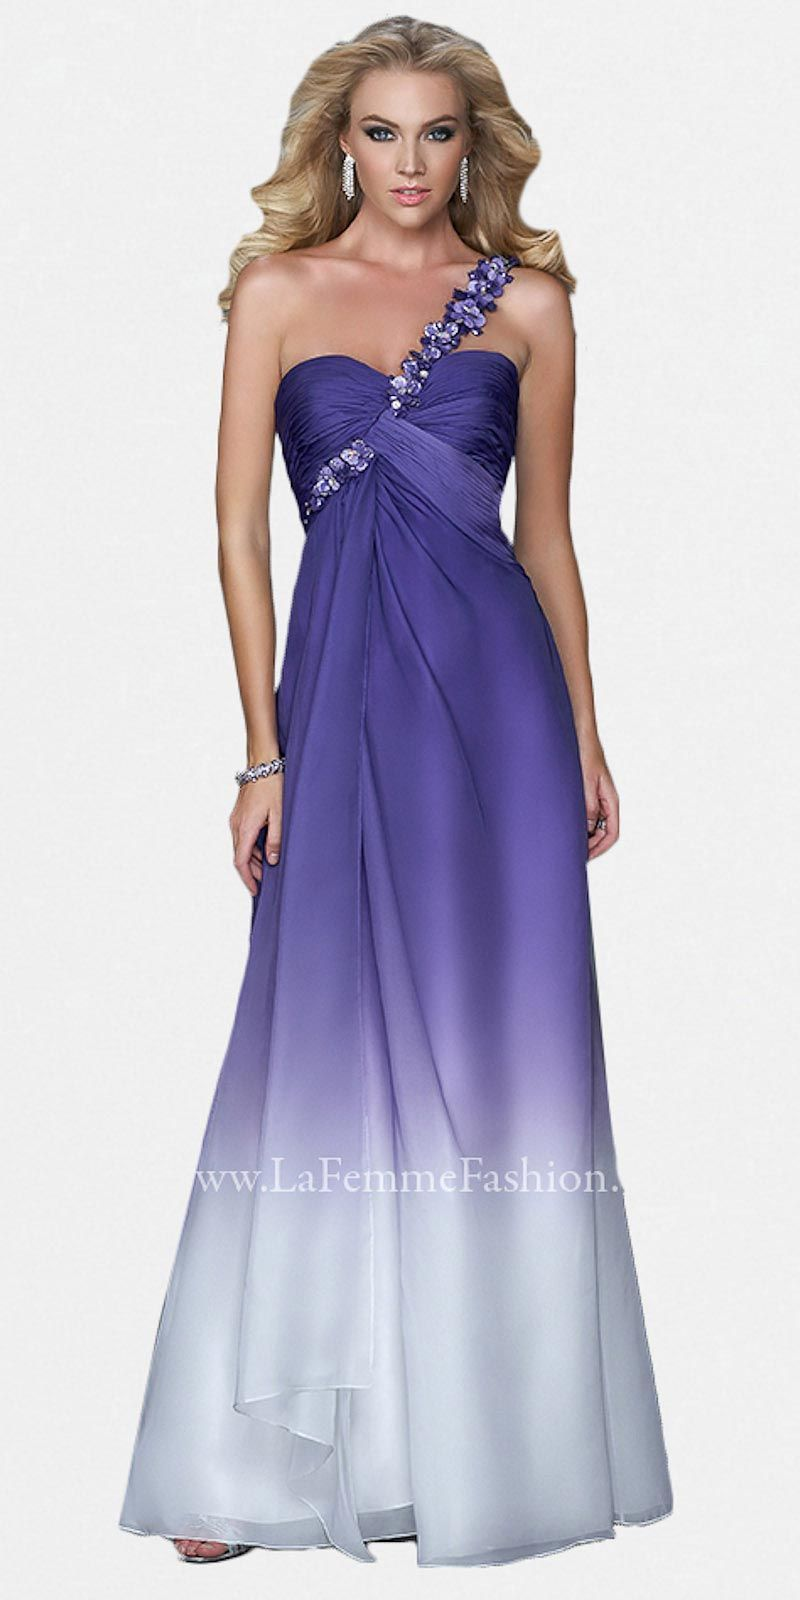 $358 Purple to white gown edressme.com | Purple gowns, dresses, n ...